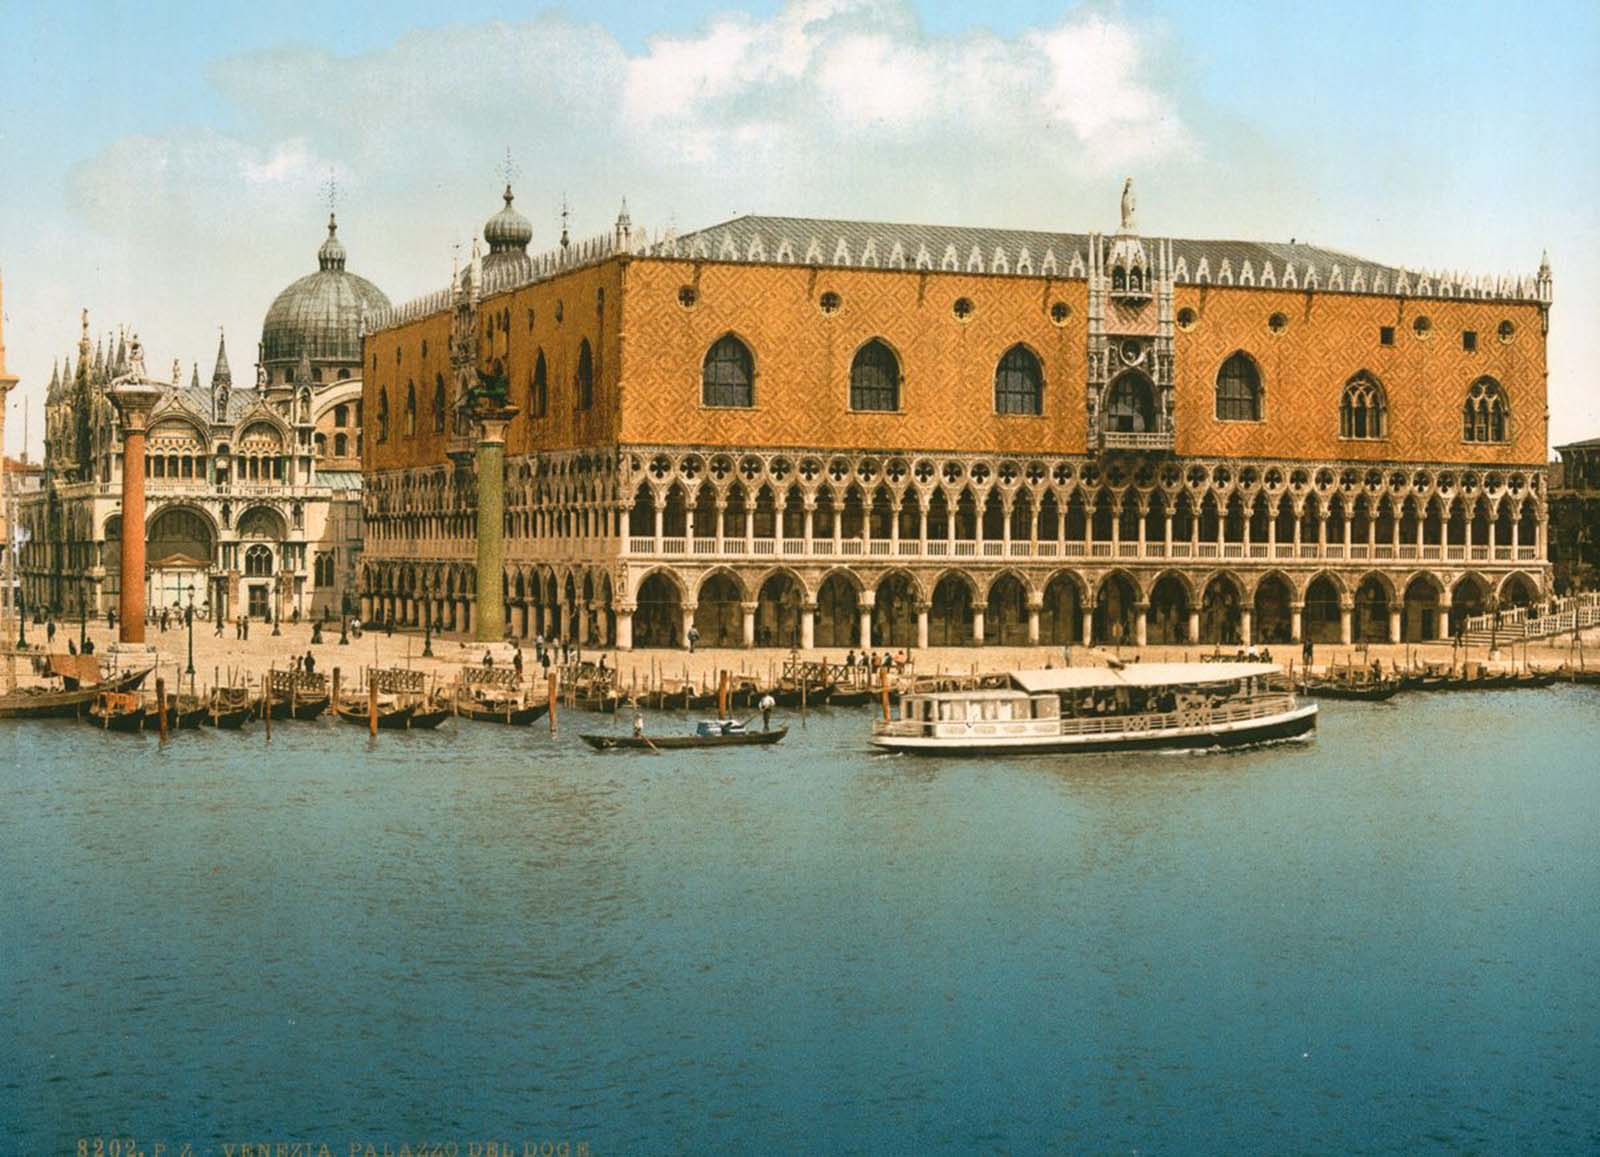 Doges' Palace.